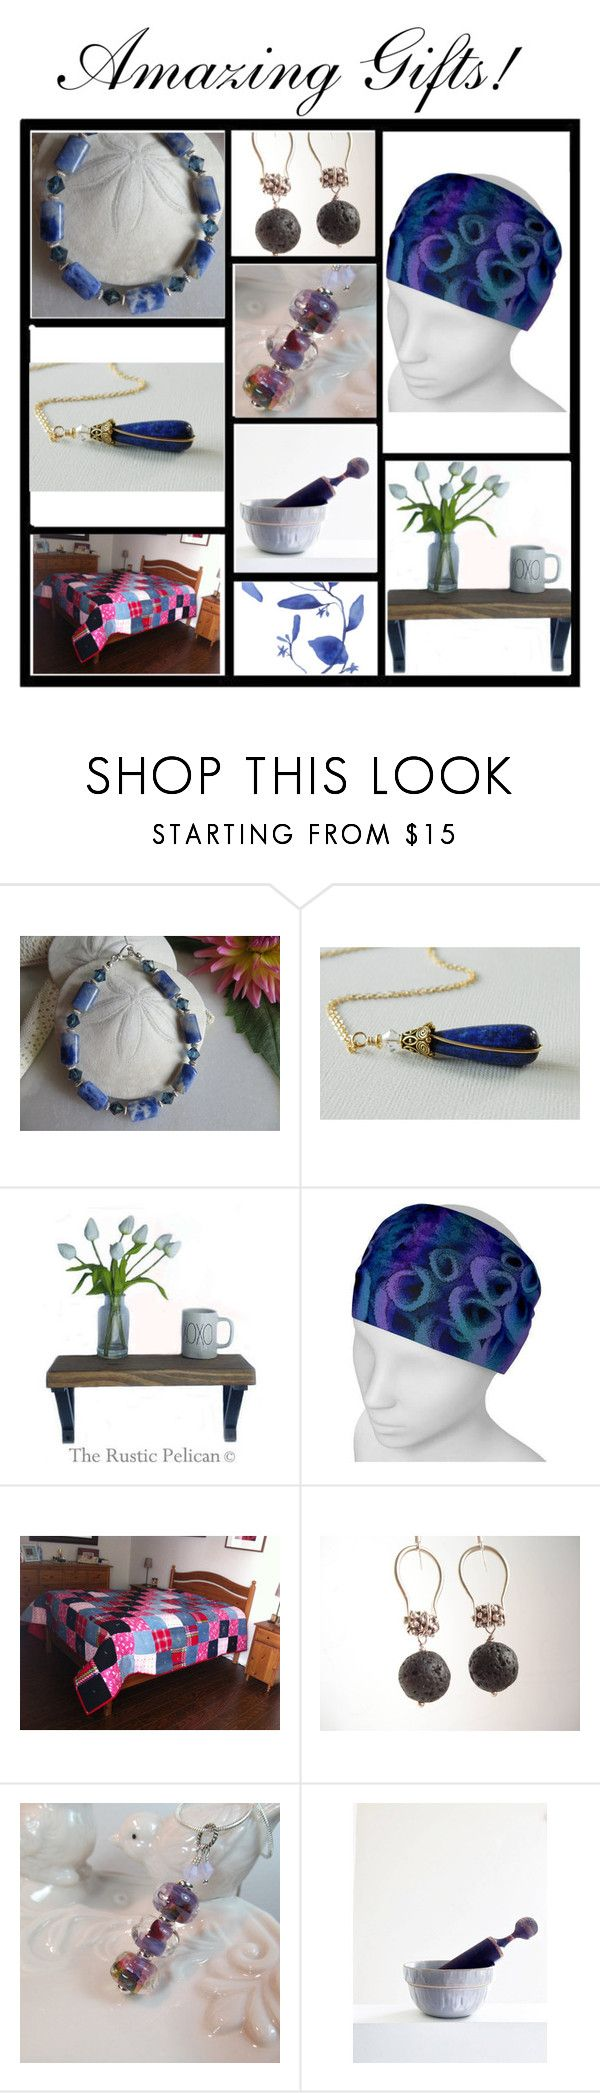 By The Rustic Pelican by therusticpelican on Polyvore featuring Lazuli, Barclay Butera, modern, contemporary, rustic and vintage